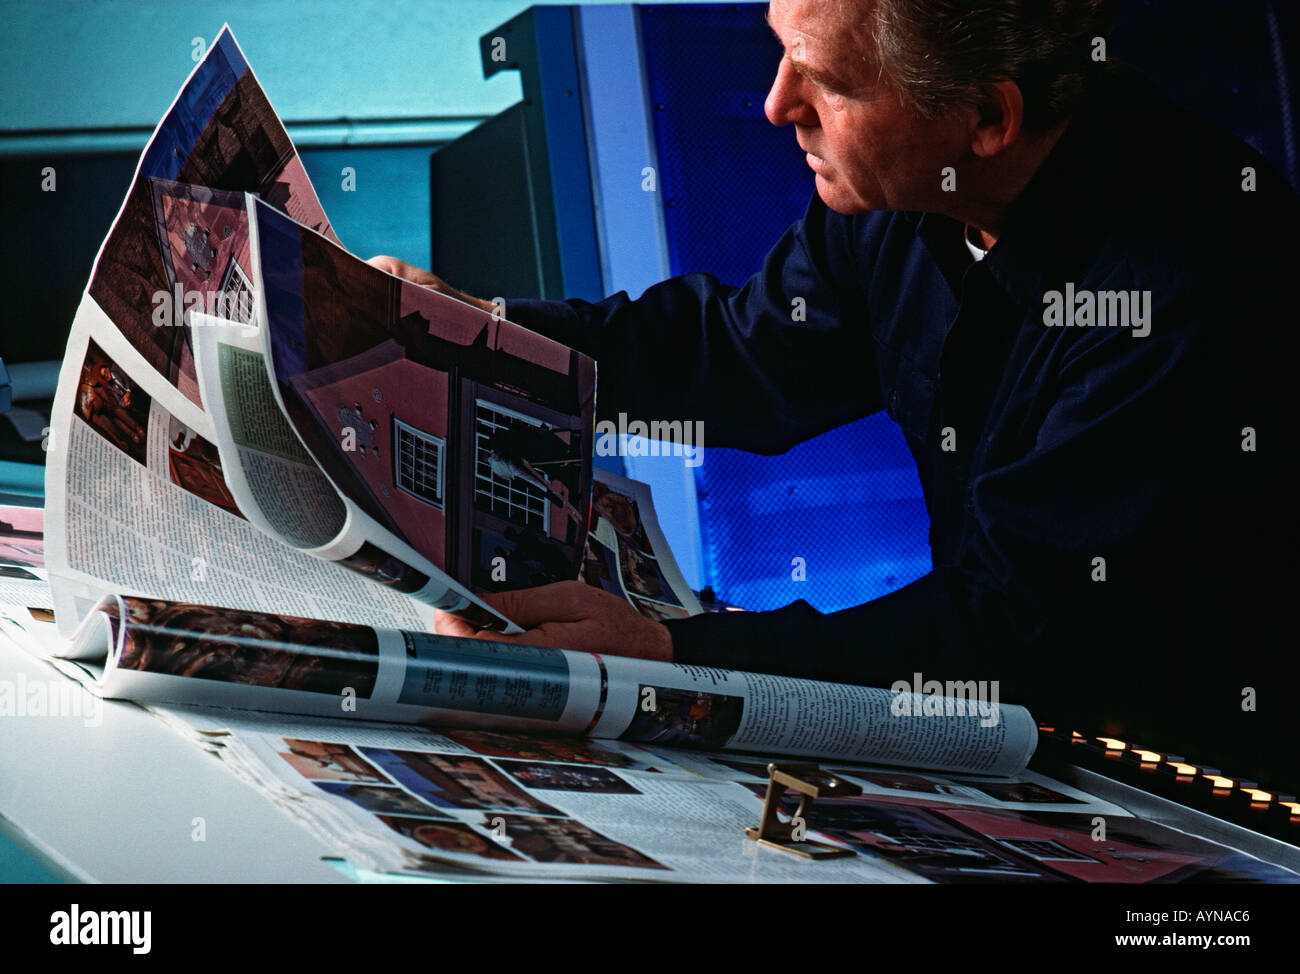 Caucasian pressman reviewing offset proof sheets in printing plant - Stock Image